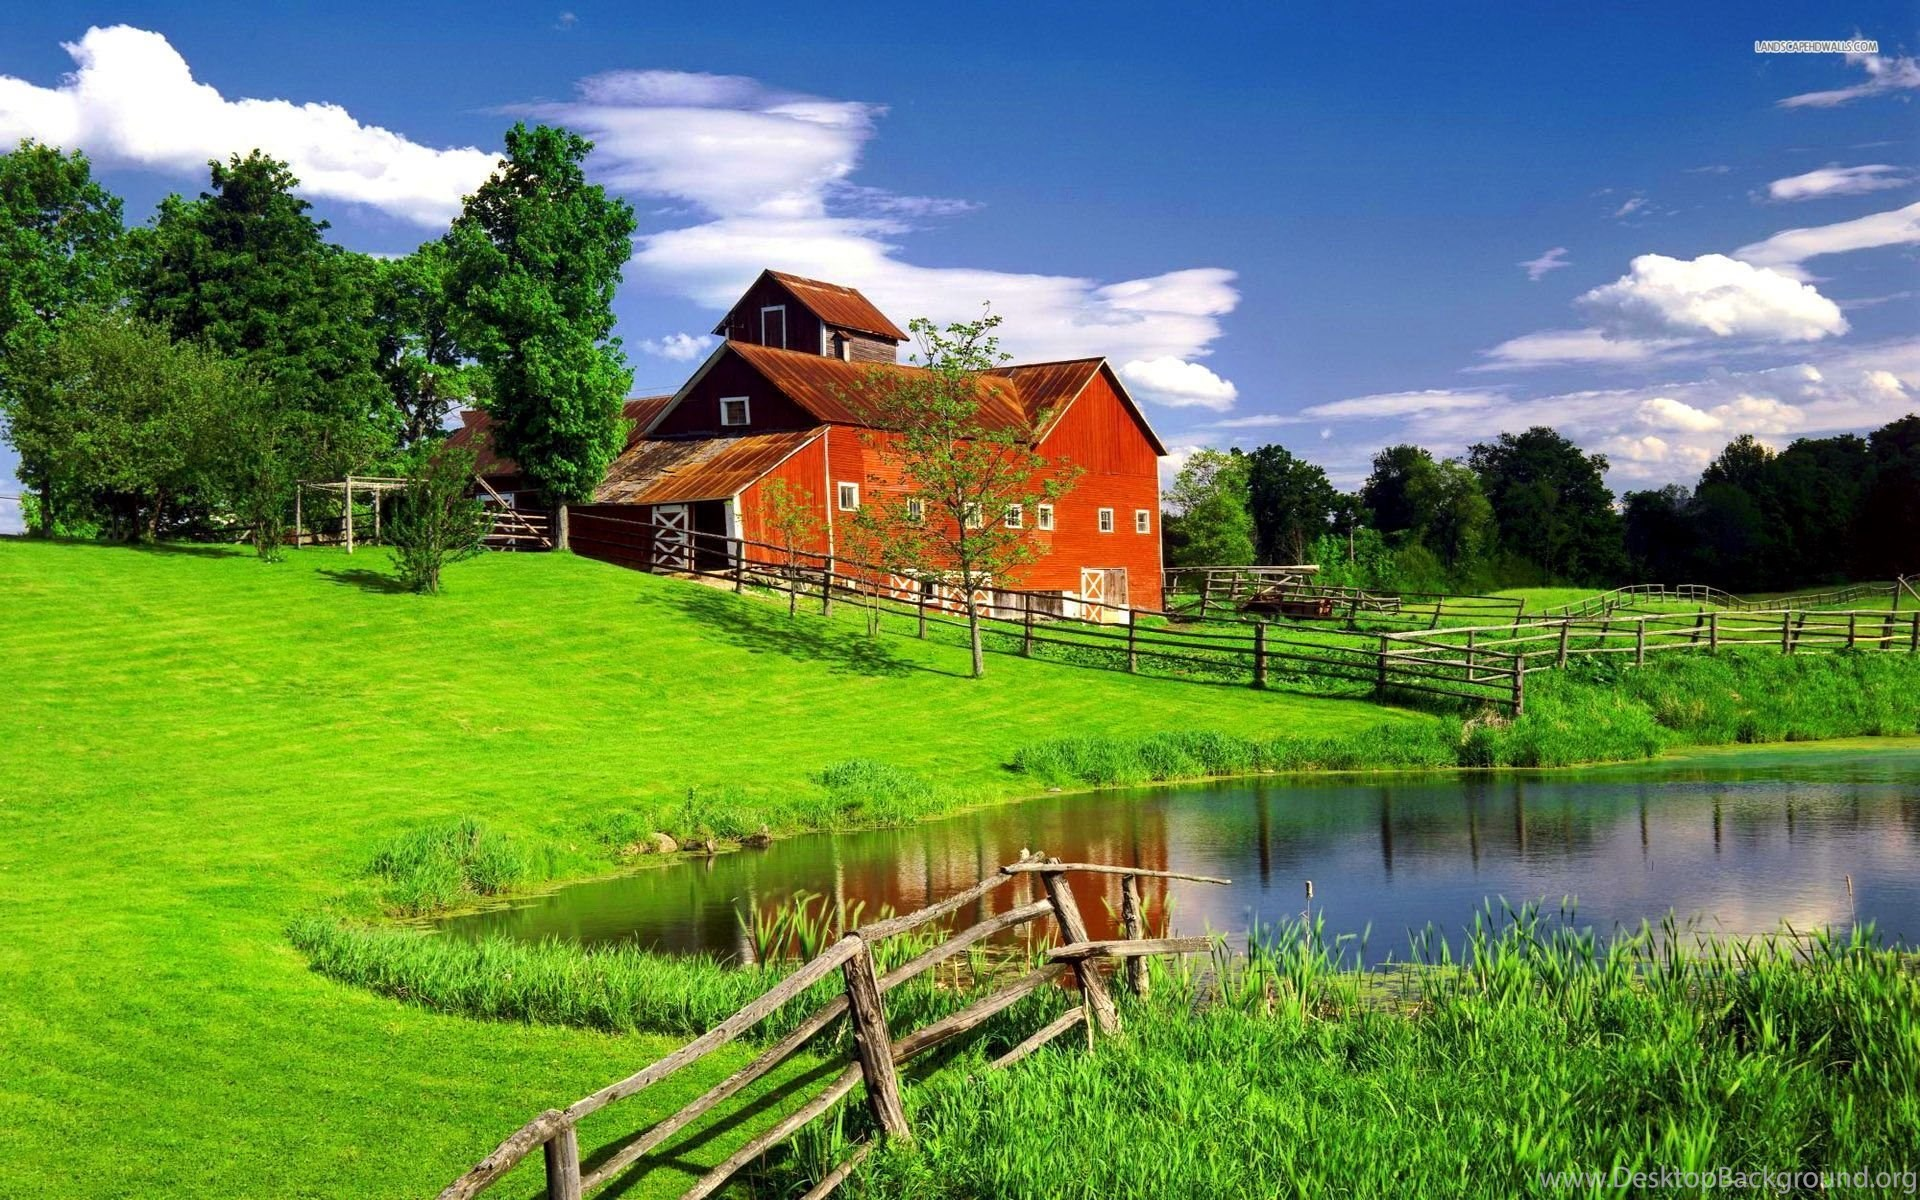 The Perfect House In Green Scenery Wallpapers Desktop Background